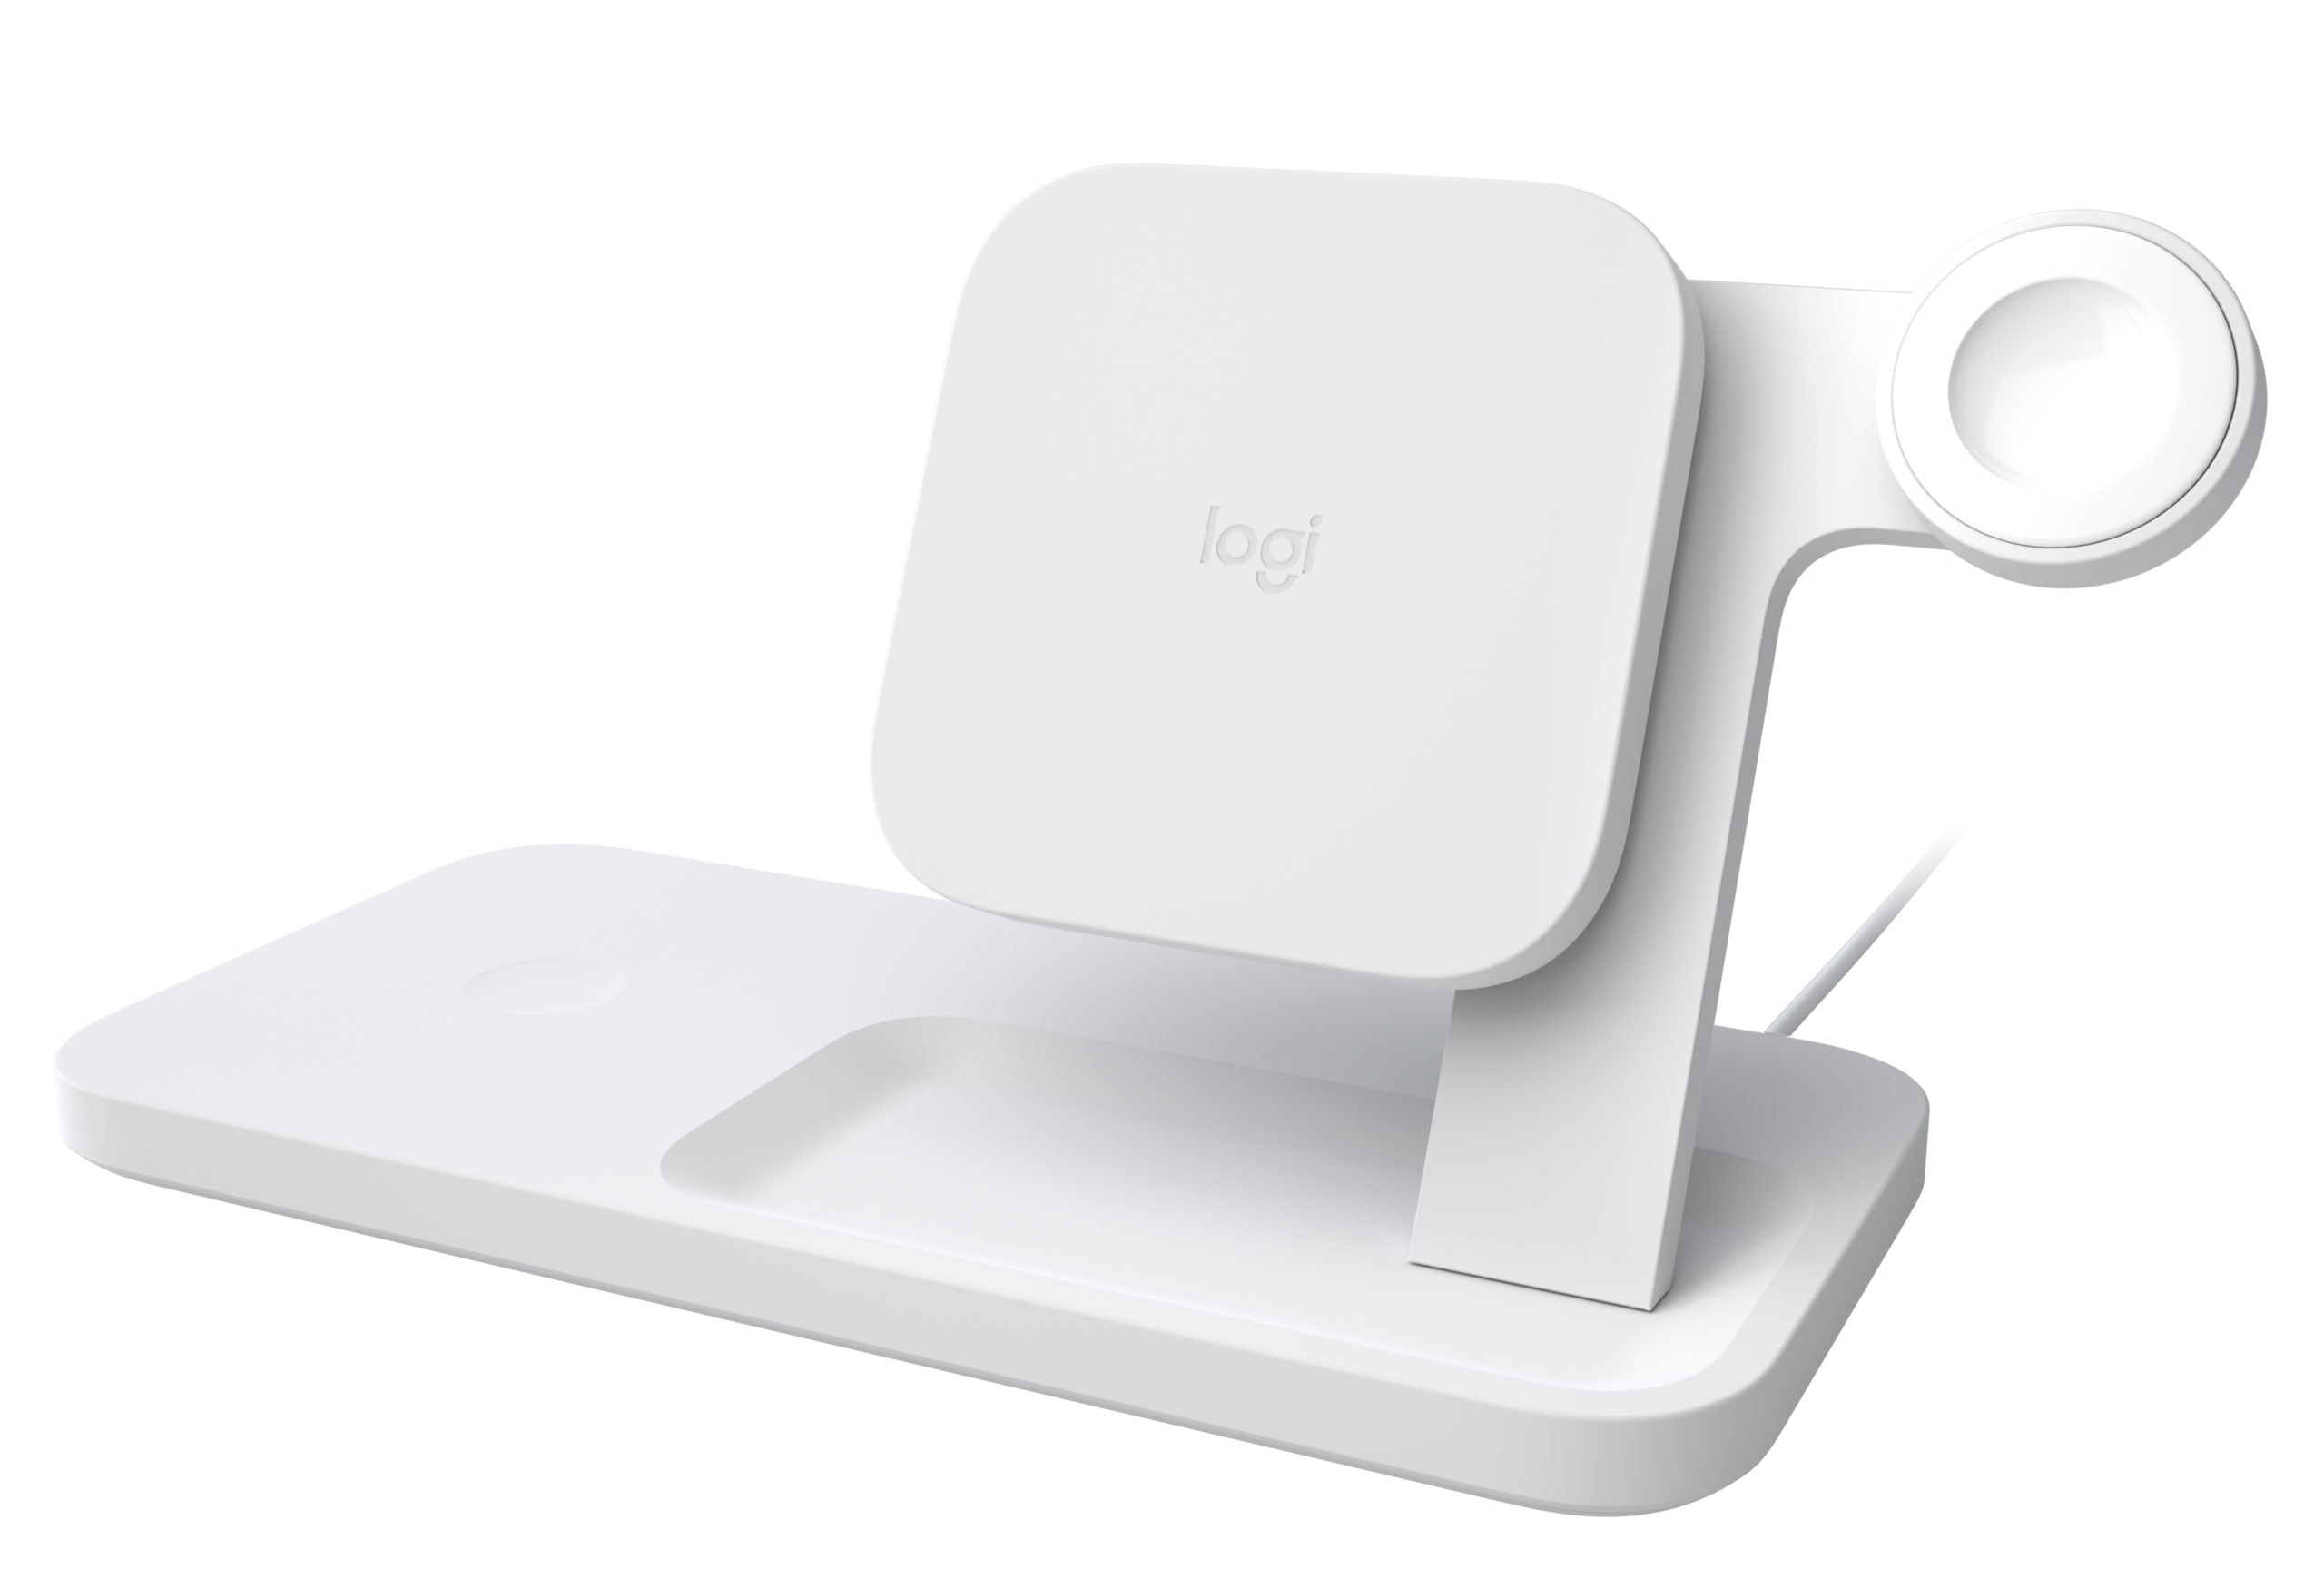 Logitech Powered Wireless Charging 3-in-1 Dock in white